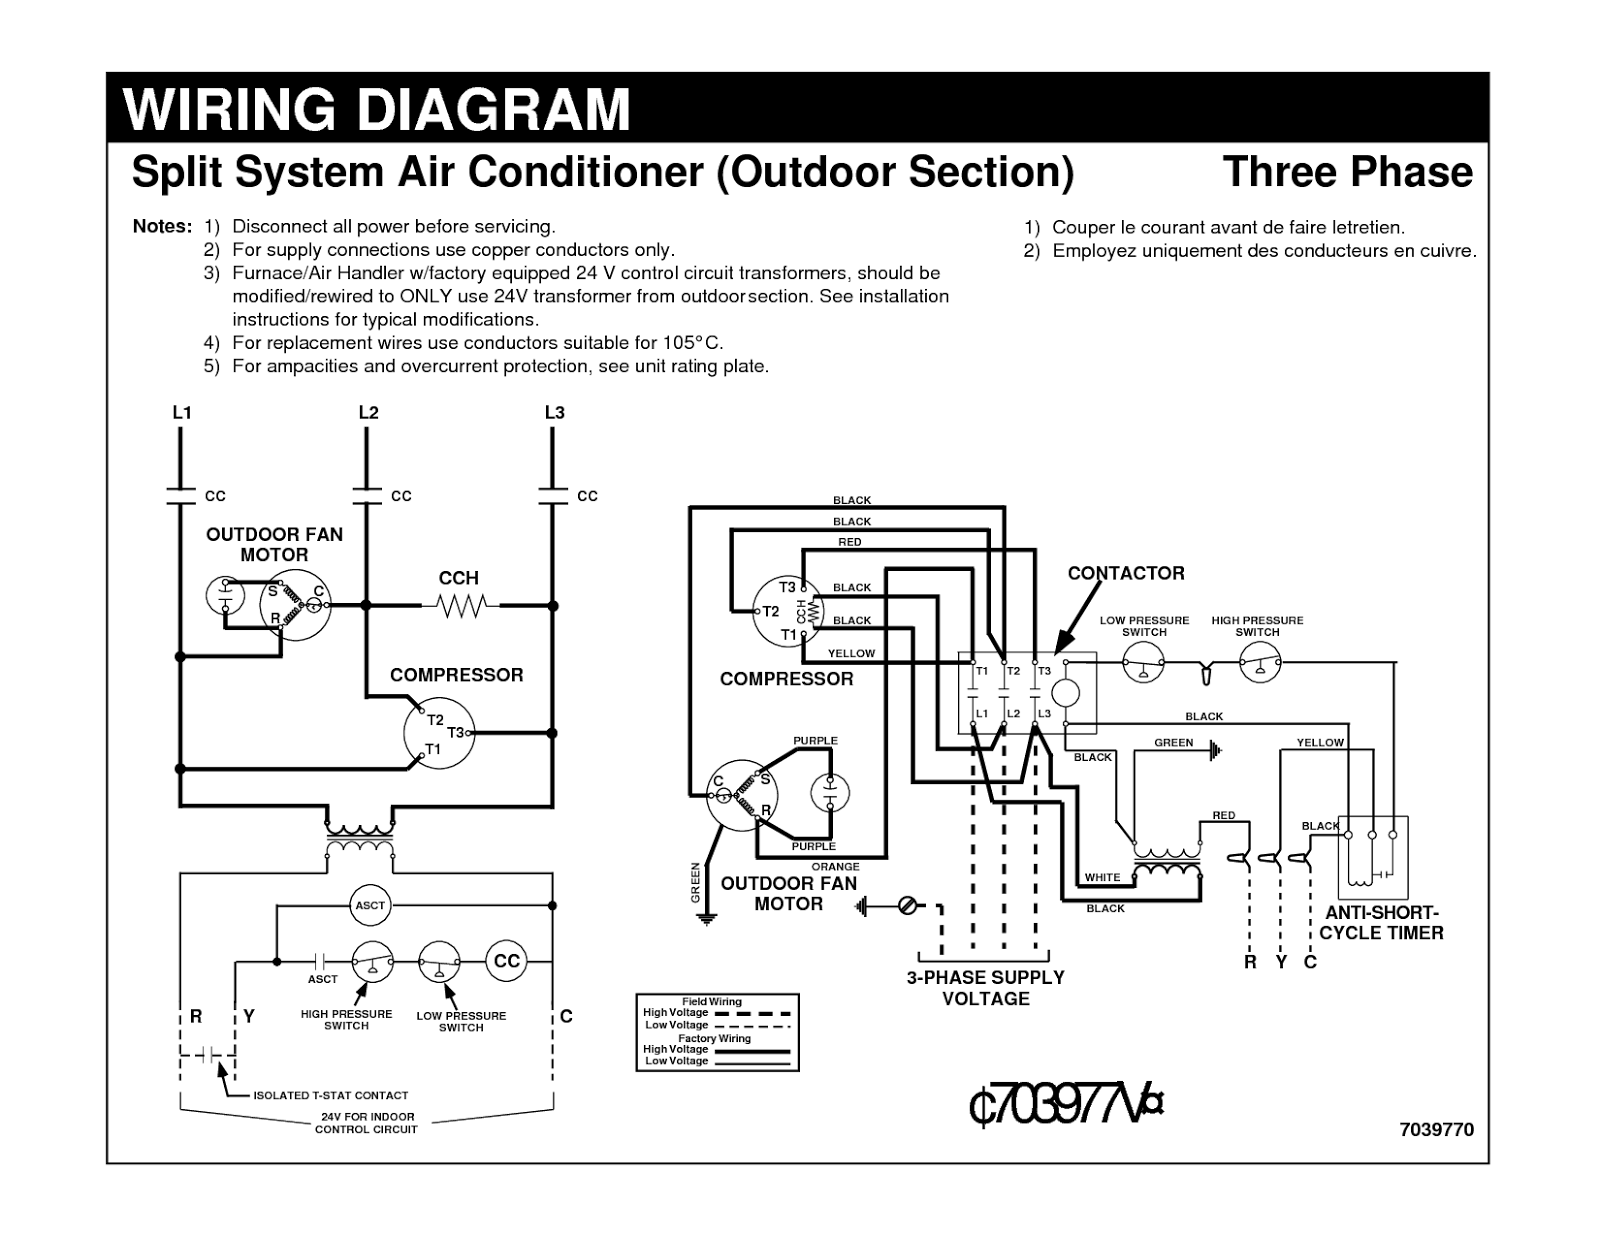 medium resolution of electrical wiring diagrams for air conditioning systems part one auto air conditioning wiring diagram air conditioning